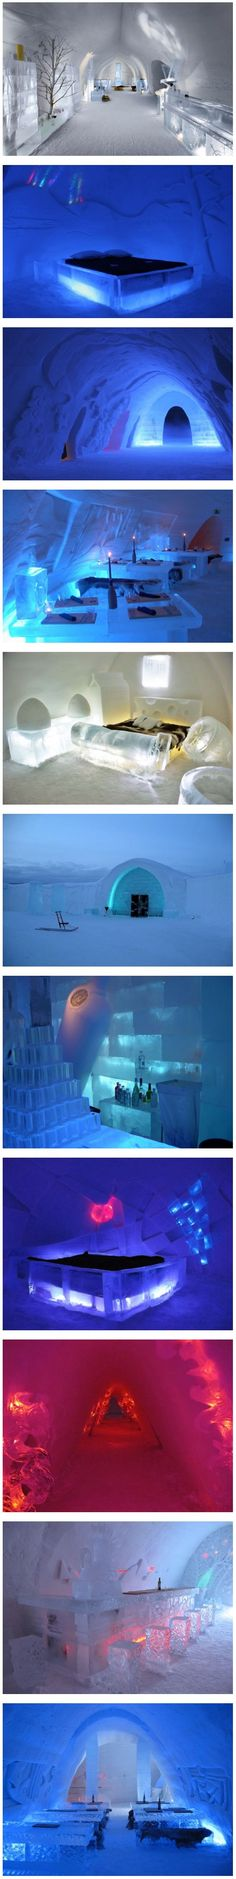 SnowHotel, Finland - looks like a great place to go have a chilled vodka. Beautiful Places To Visit, Oh The Places You'll Go, Helsinki, Finnish Language, Unusual Hotels, Finland Travel, Ice Hotel, Lappland, Places In Europe